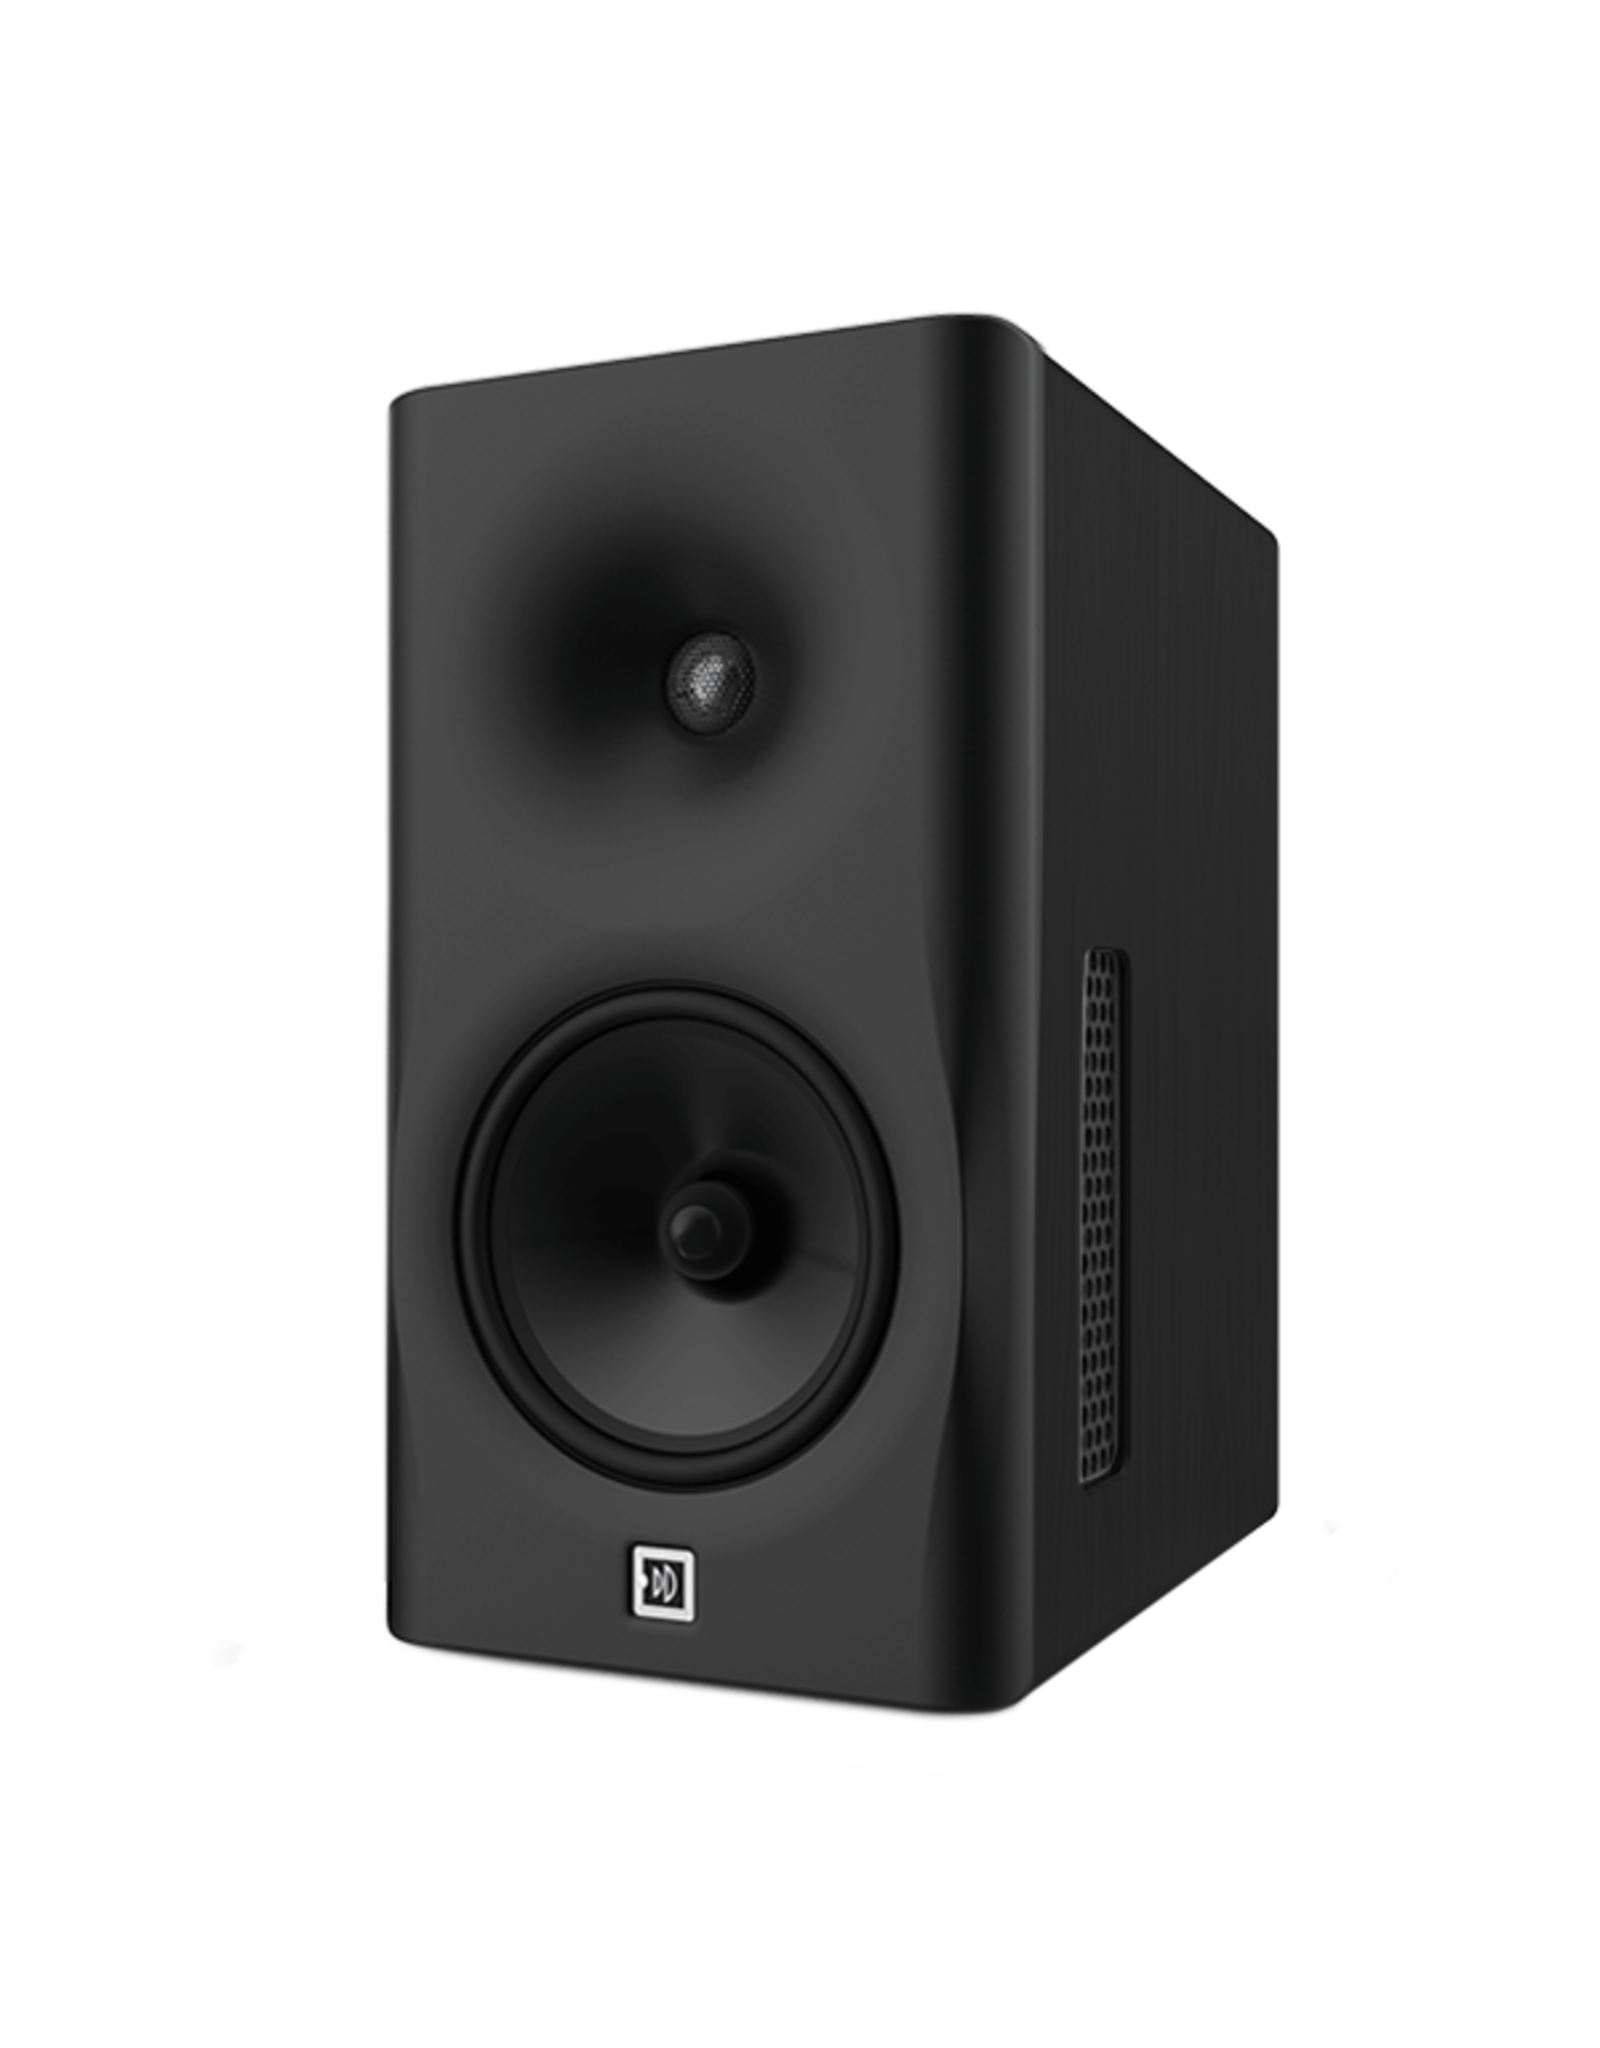 Dutch & Dutch 8C speaker, black baffle, brown cabinet